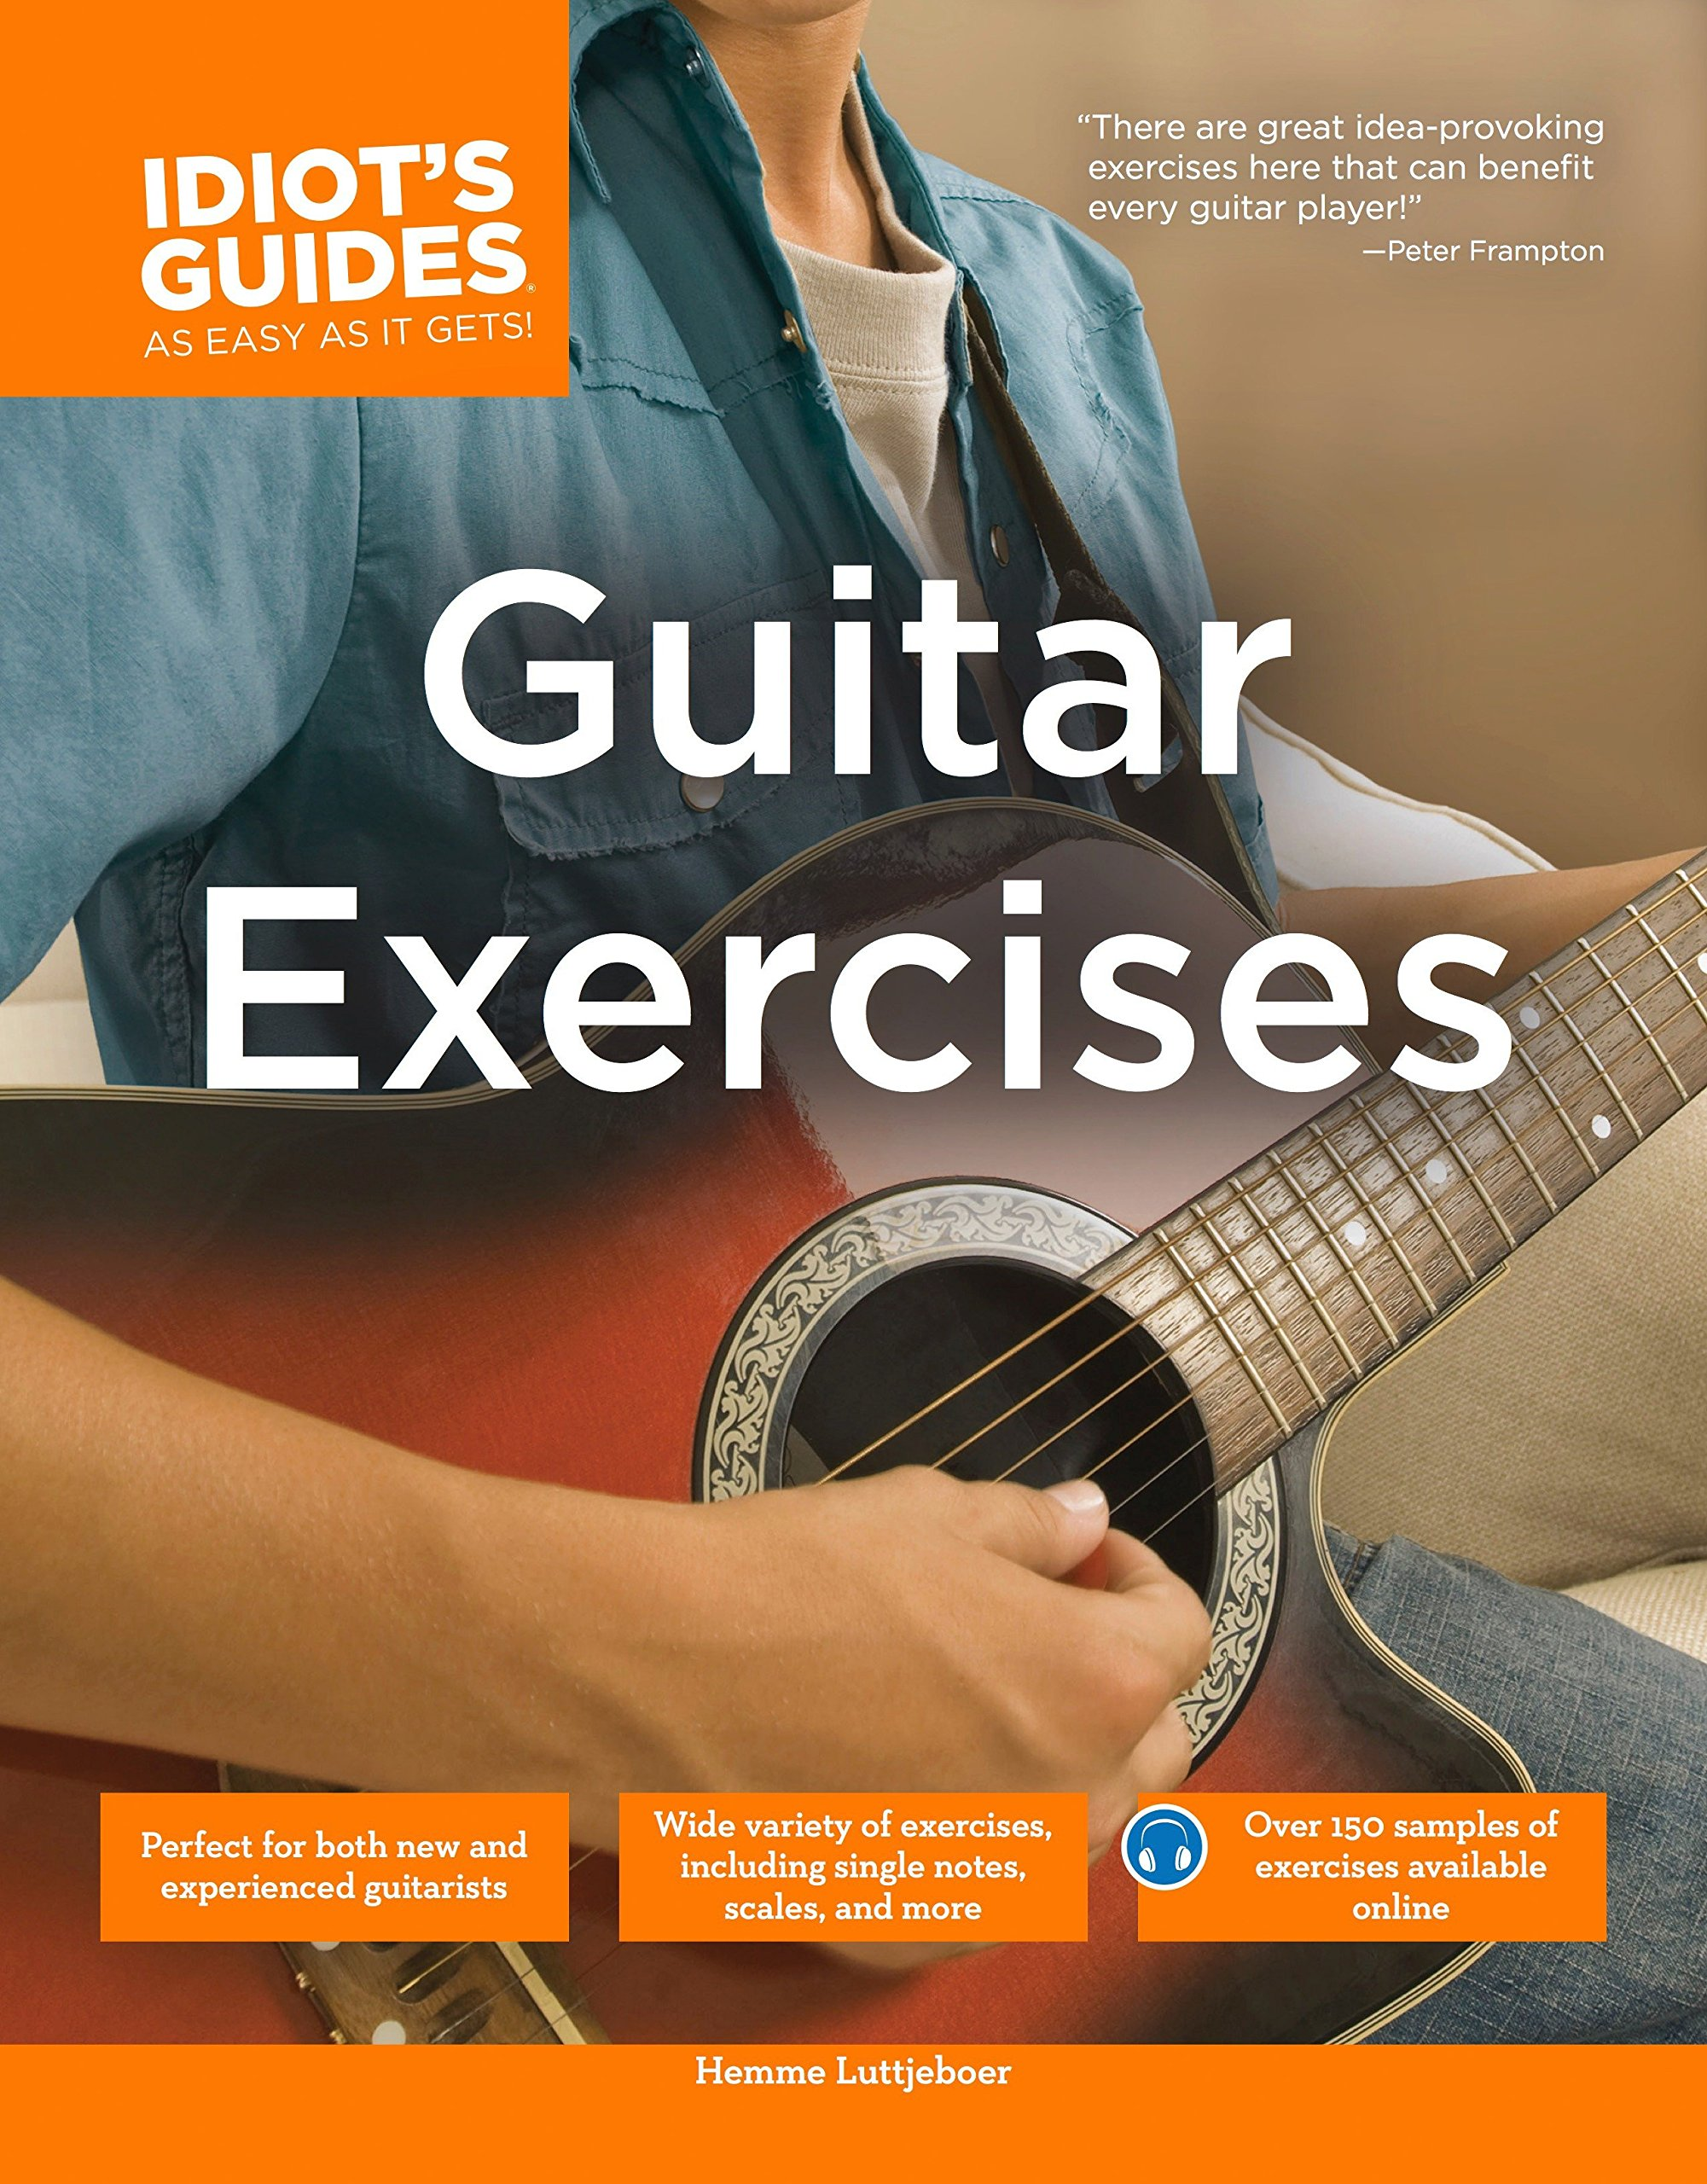 The Complete Idiots Guide To Guitar Exercises Hemme Luttjeboer